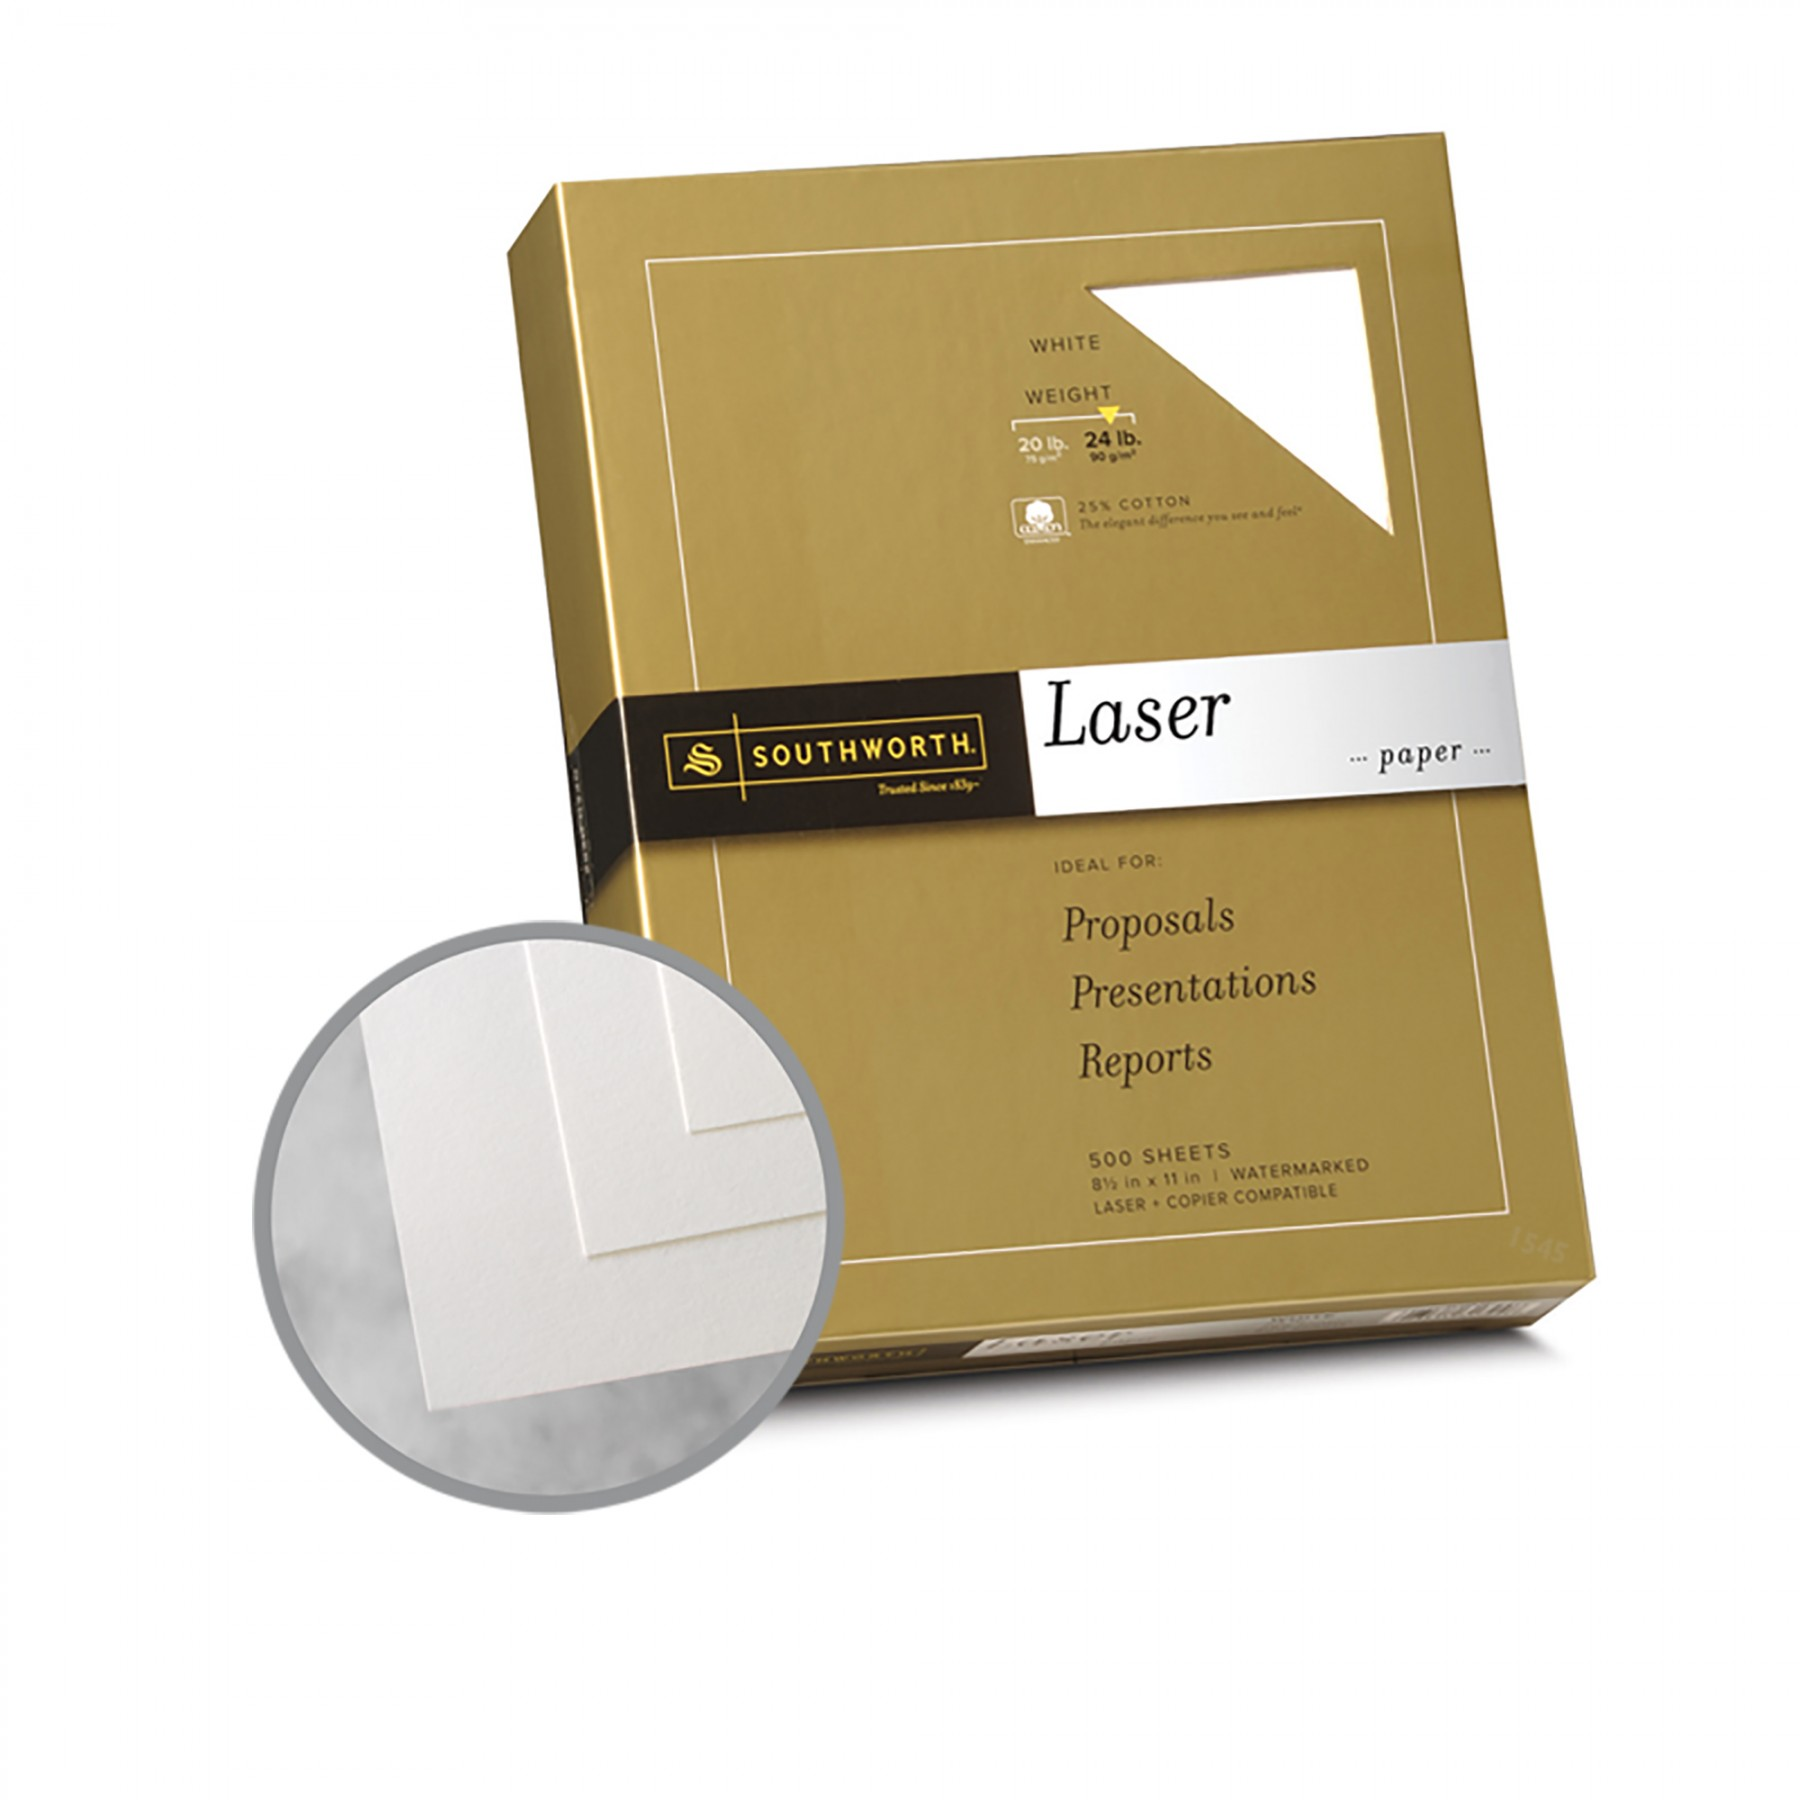 25 cotton 20 lb weight watermarked white paper Southworth diamond white 25% cotton business paper : • southworth diamond white business paper 20 lb basis weight - recycled - 25% recycled content.